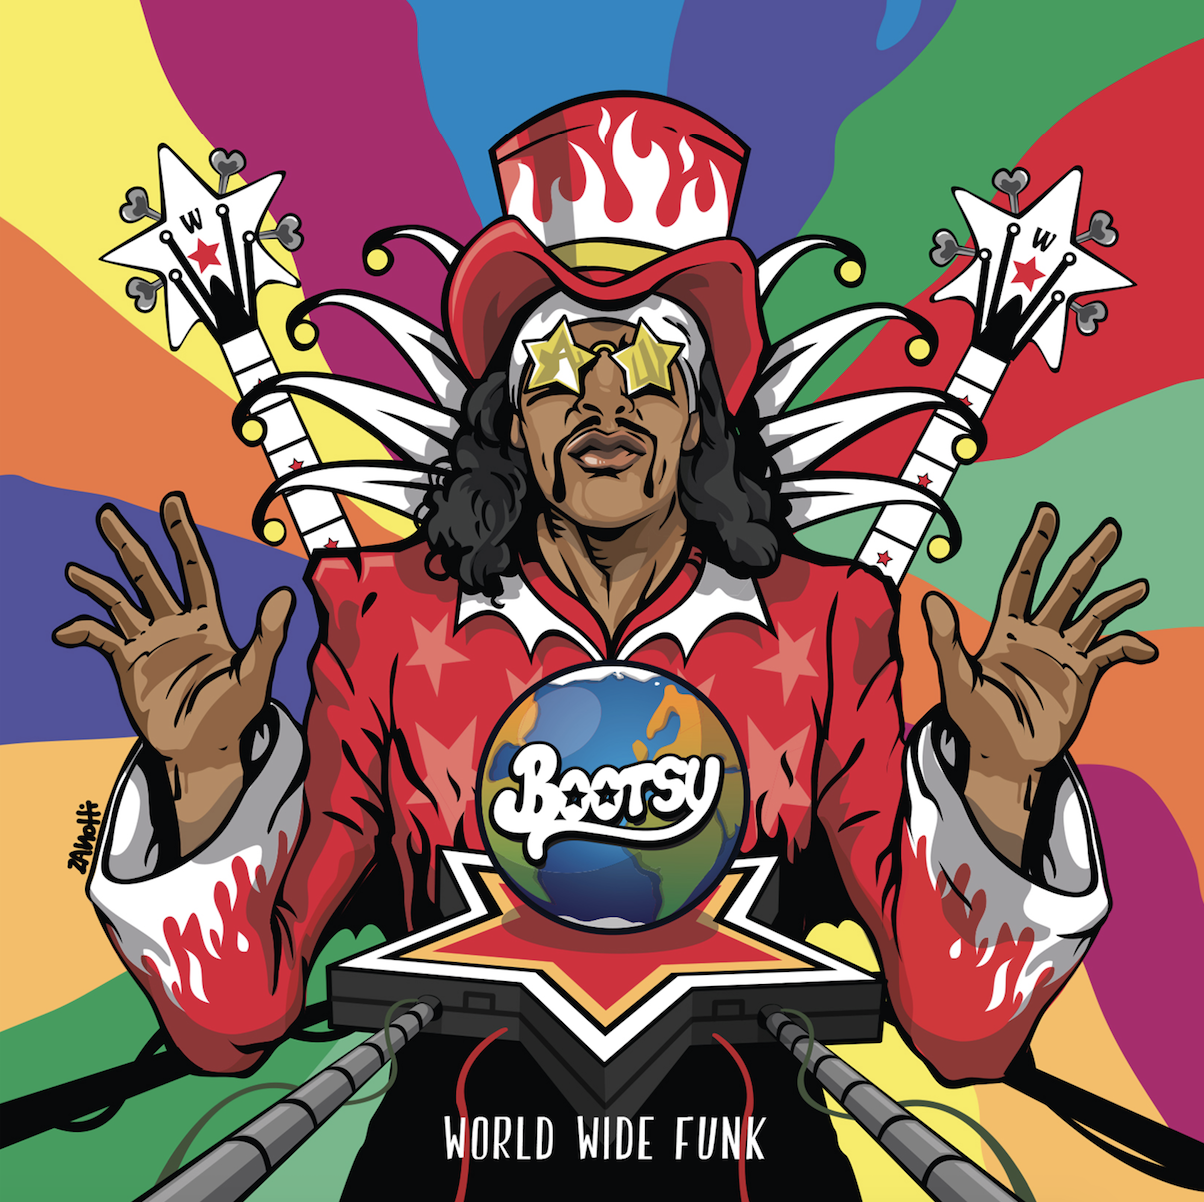 screen shot 2017 08 23 at 10 24 04 am Bootsy Collins announces new album, World Wide Funk, shares lead single, Worth My While with Kali Uchis: Stream